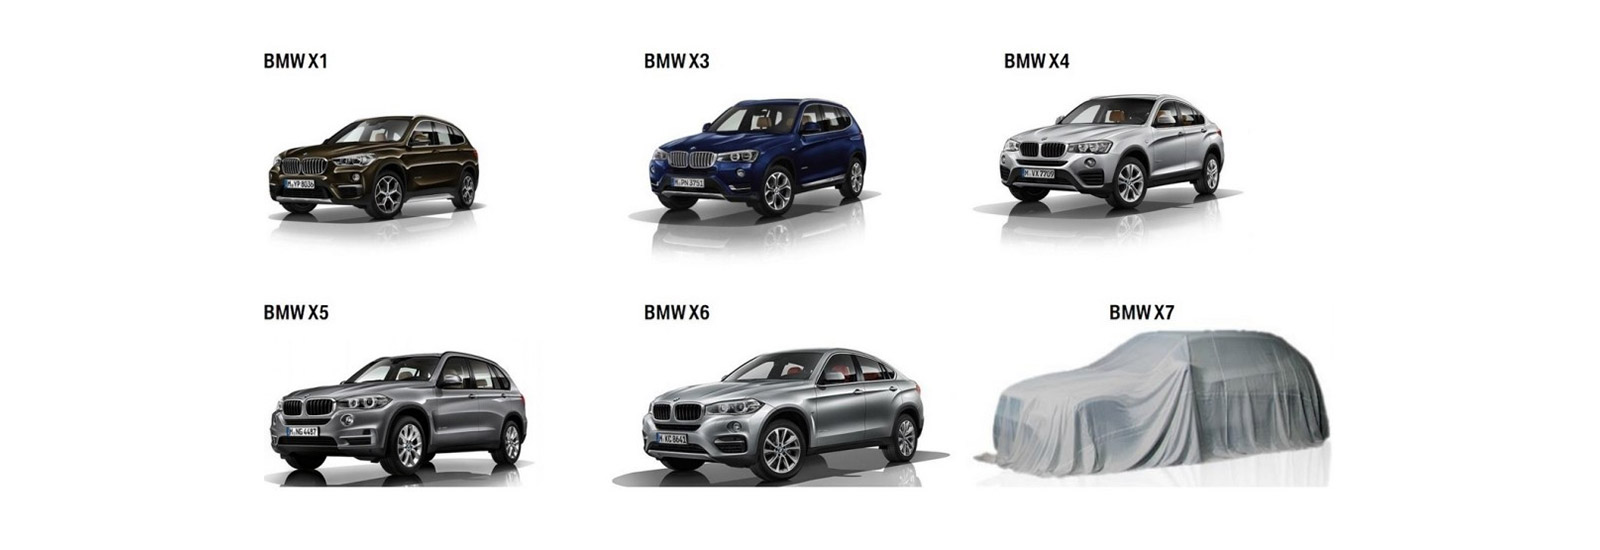 2018 bmw large suv. delighful suv the x7 will sit at the top of brandu0027s suv lineup inside 2018 bmw large suv